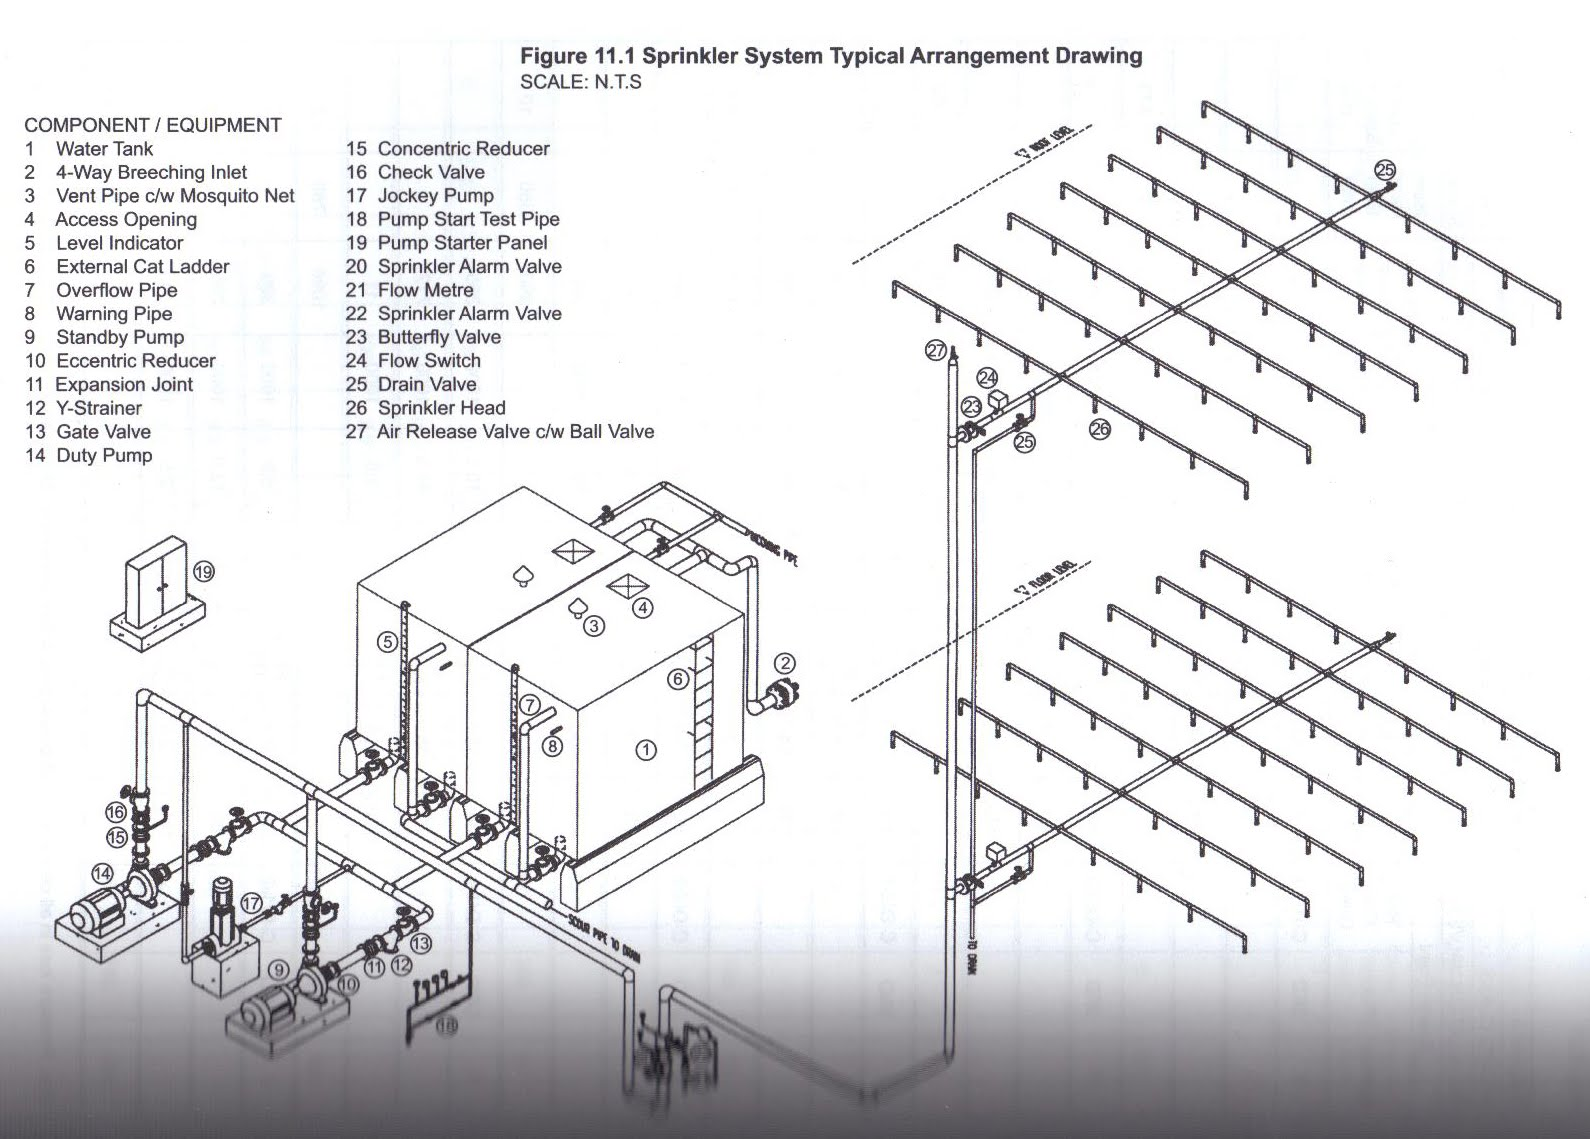 Dry Pipe Sprinkler System Riser Diagram Gmos 04 Wiring Pin On Pinterest